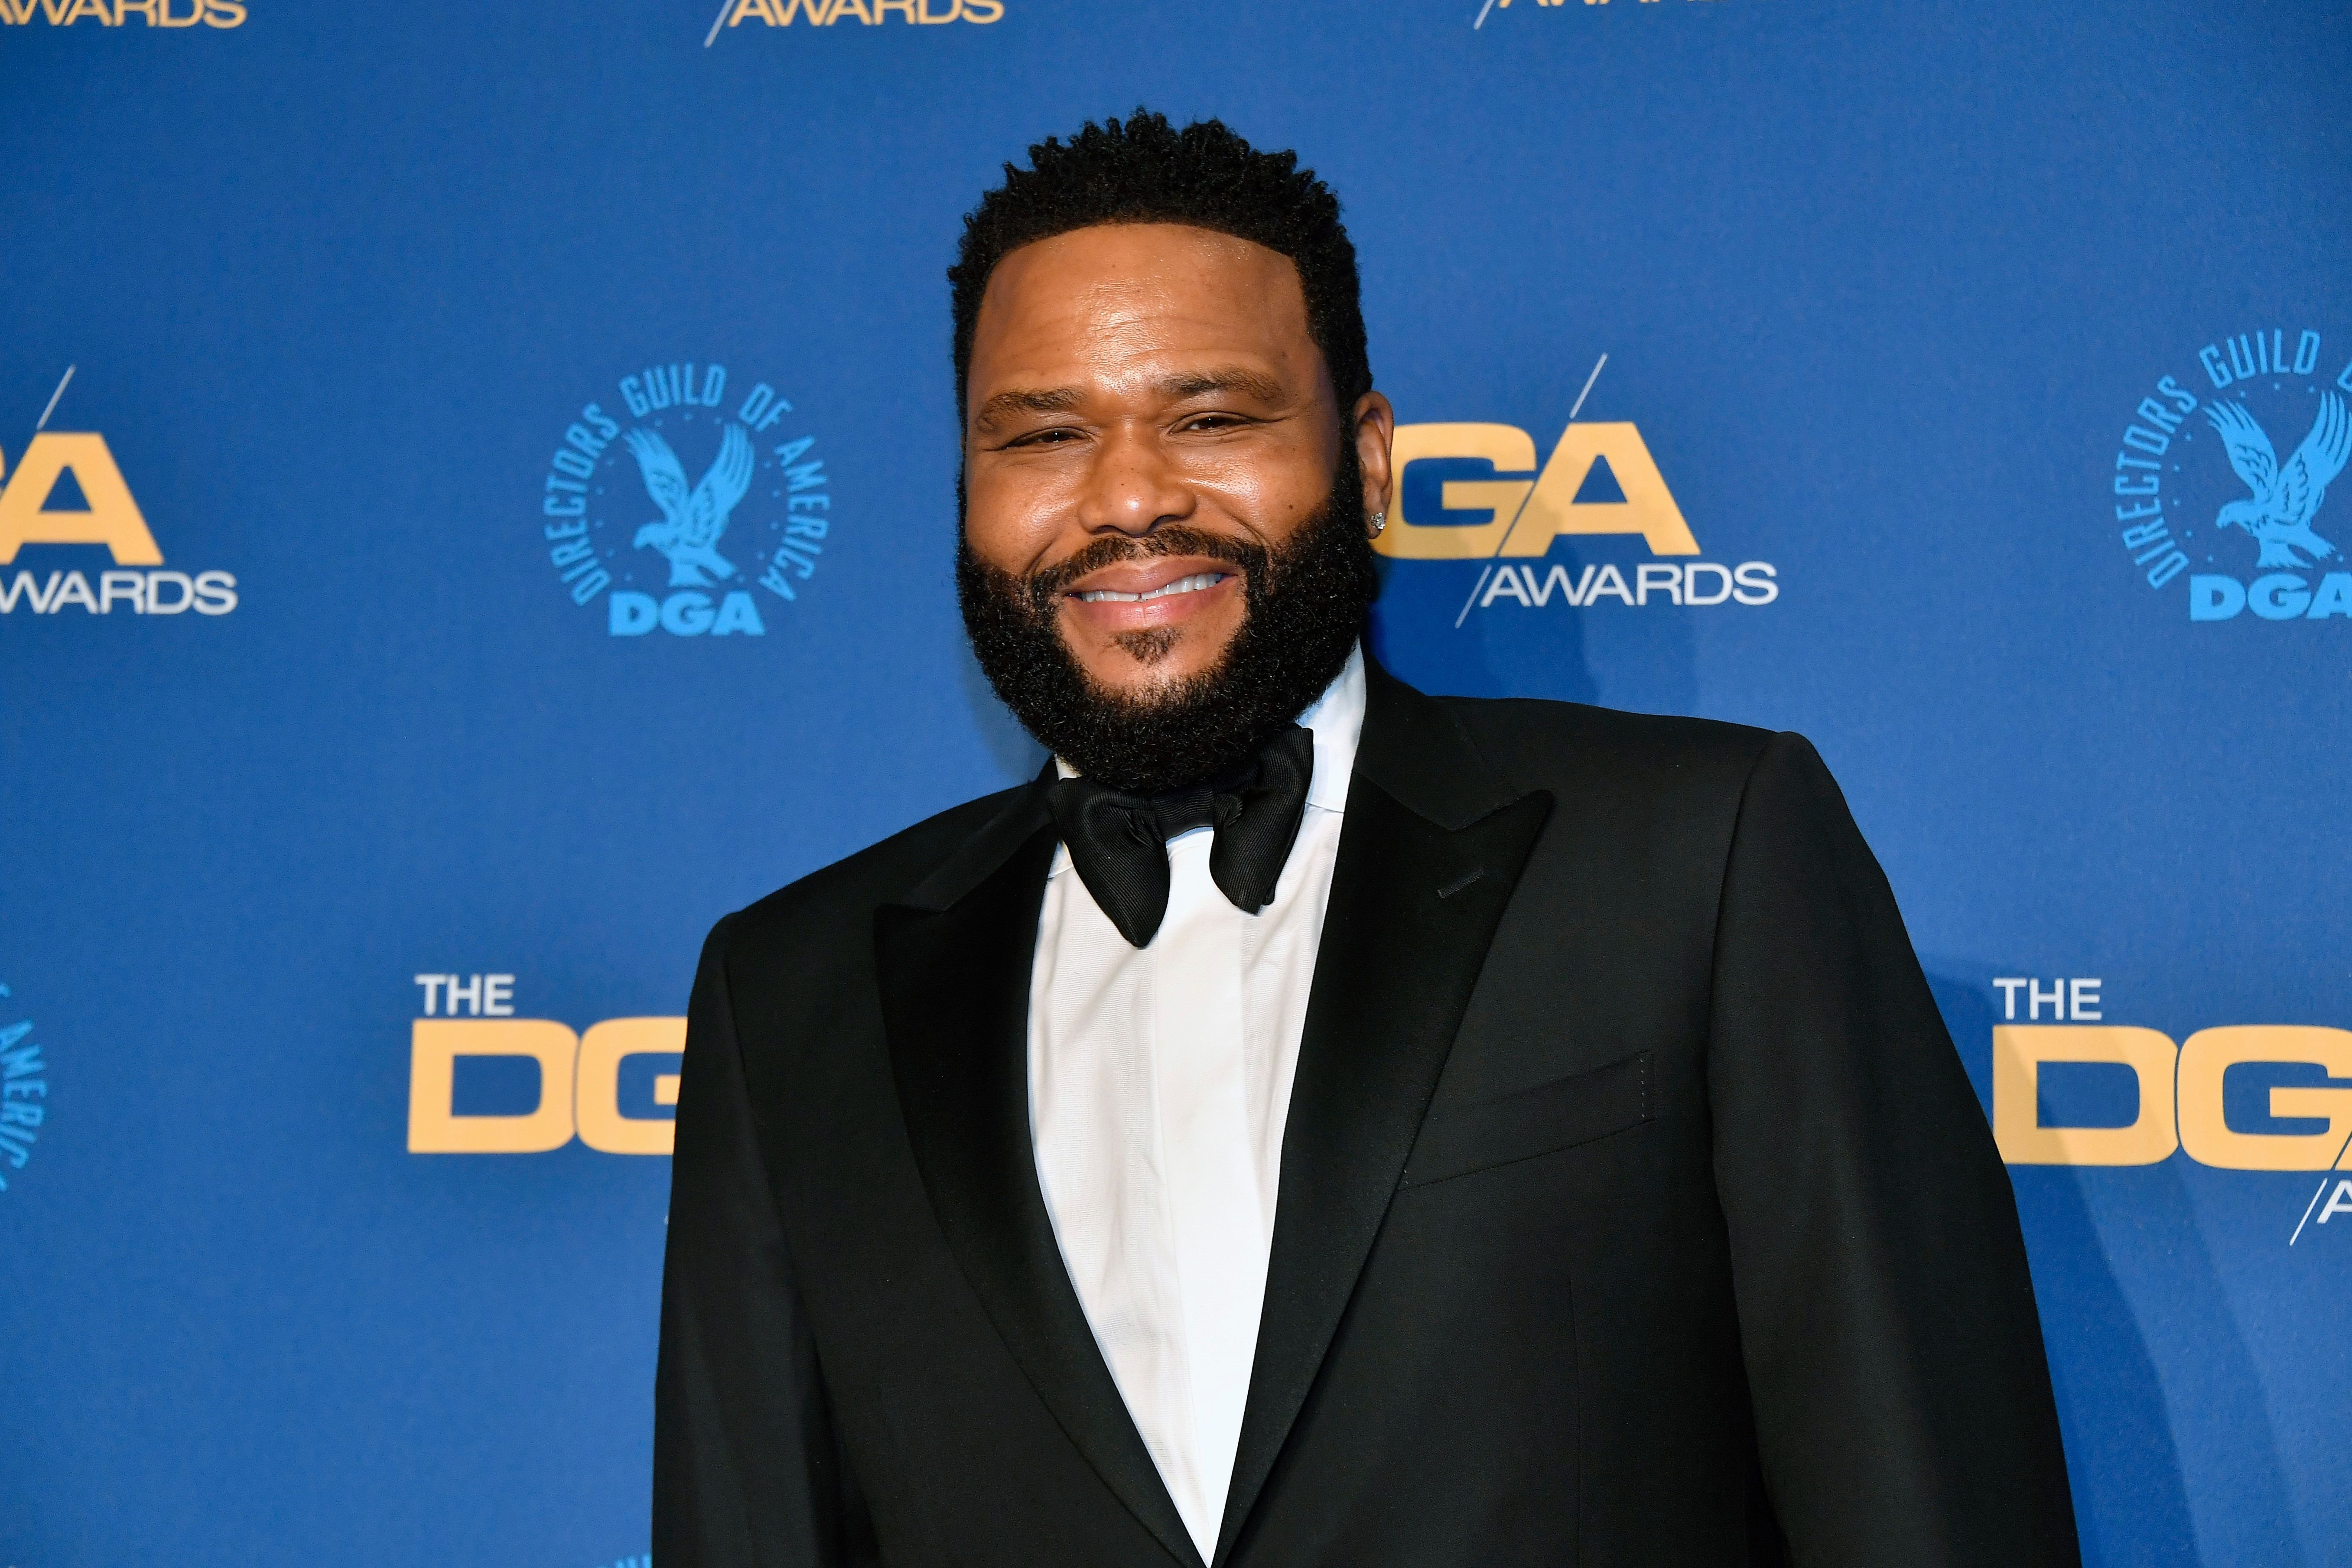 Anthony Anderson poses in the press room during the 72nd Annual Directors Guild Of America Awards at The Ritz Carlton on January 25, 2020 in Los Angeles, California. | Photo: Getty Images